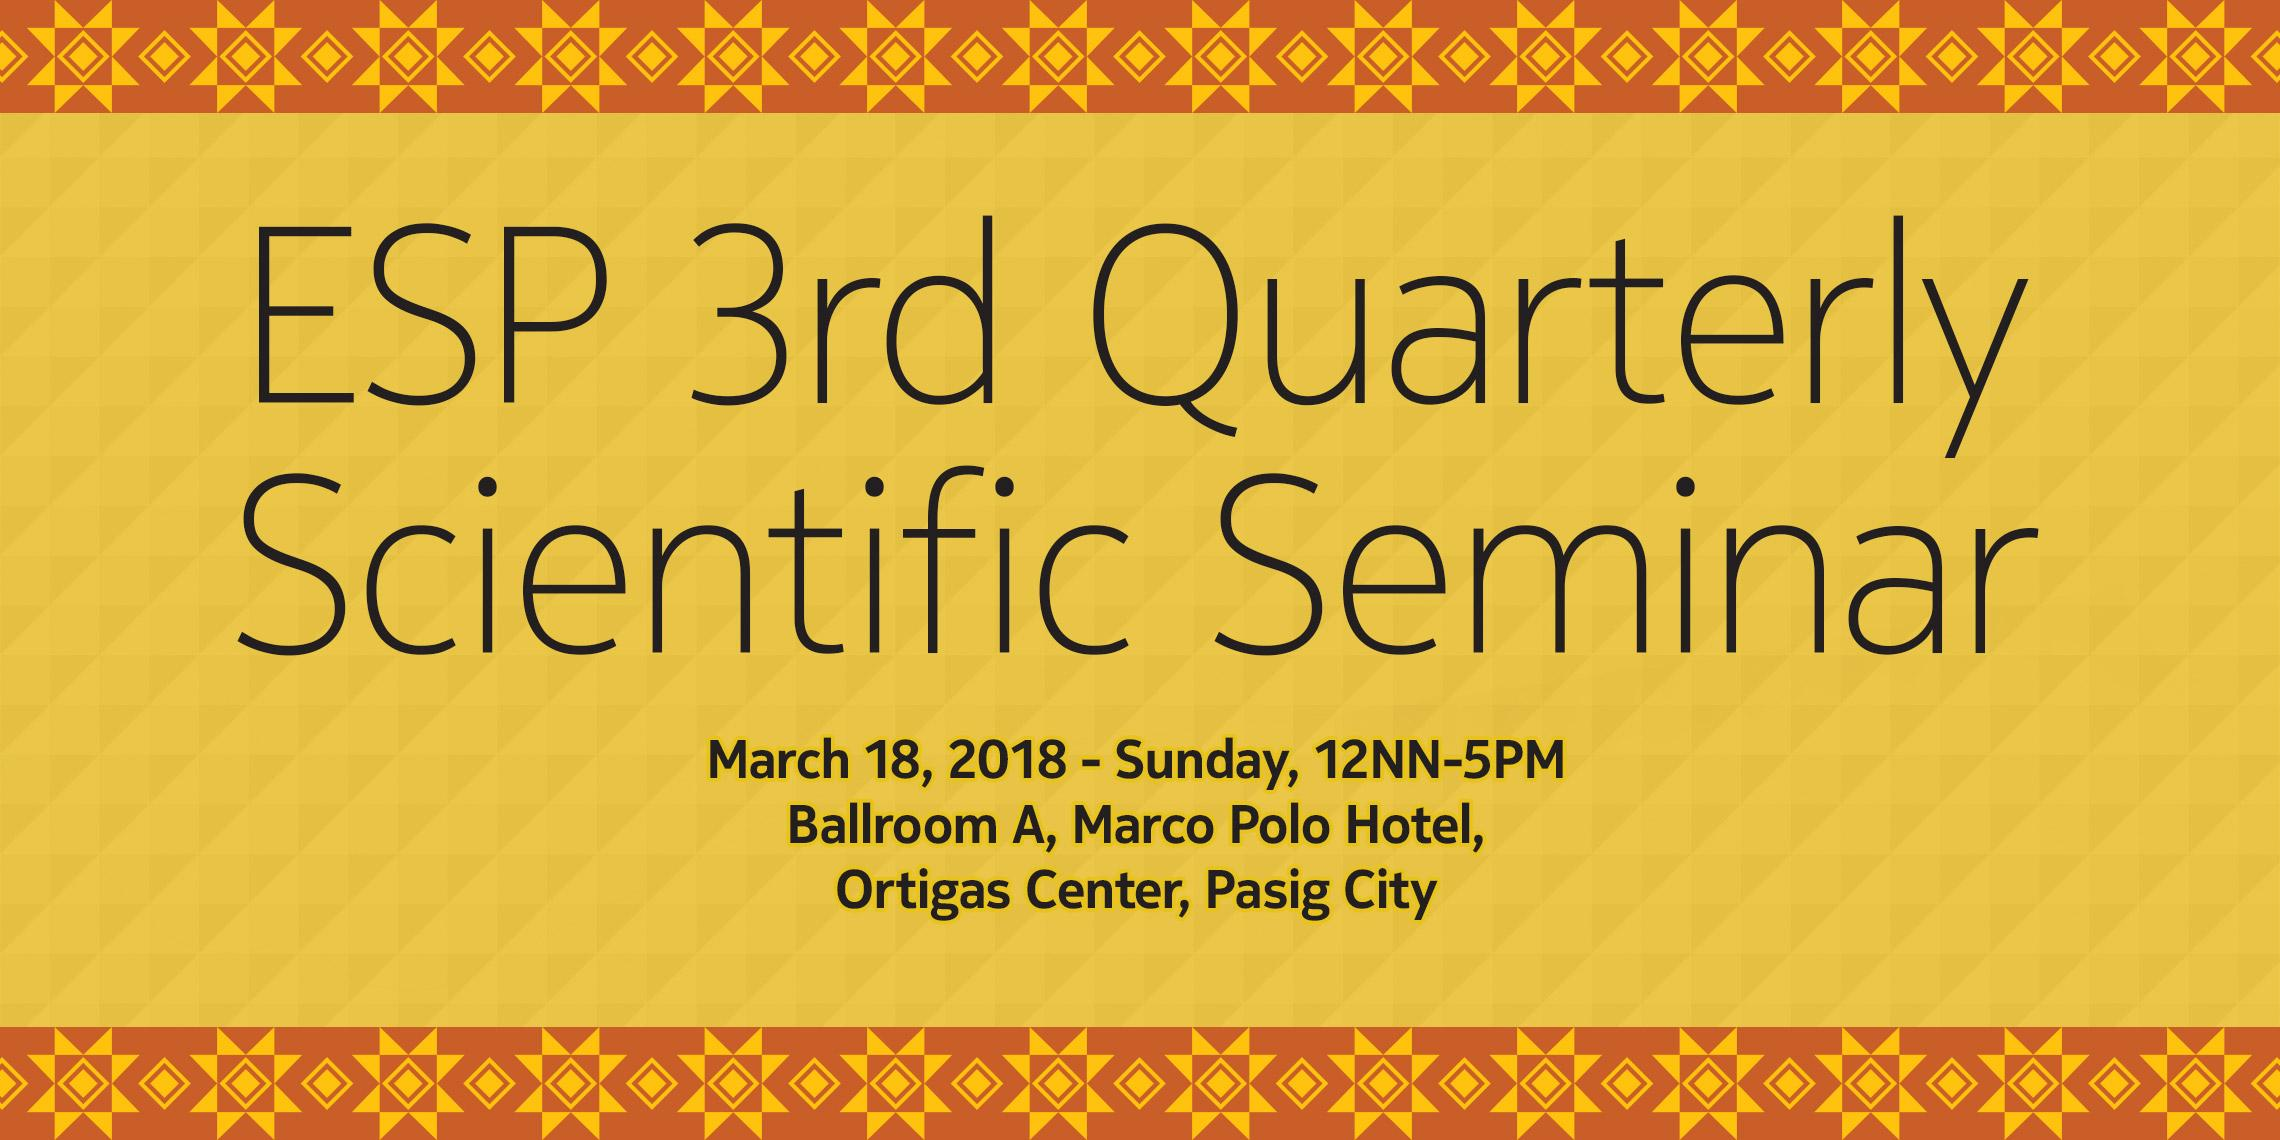 ESP 3rd Quarterly Scientific Seminar 2018